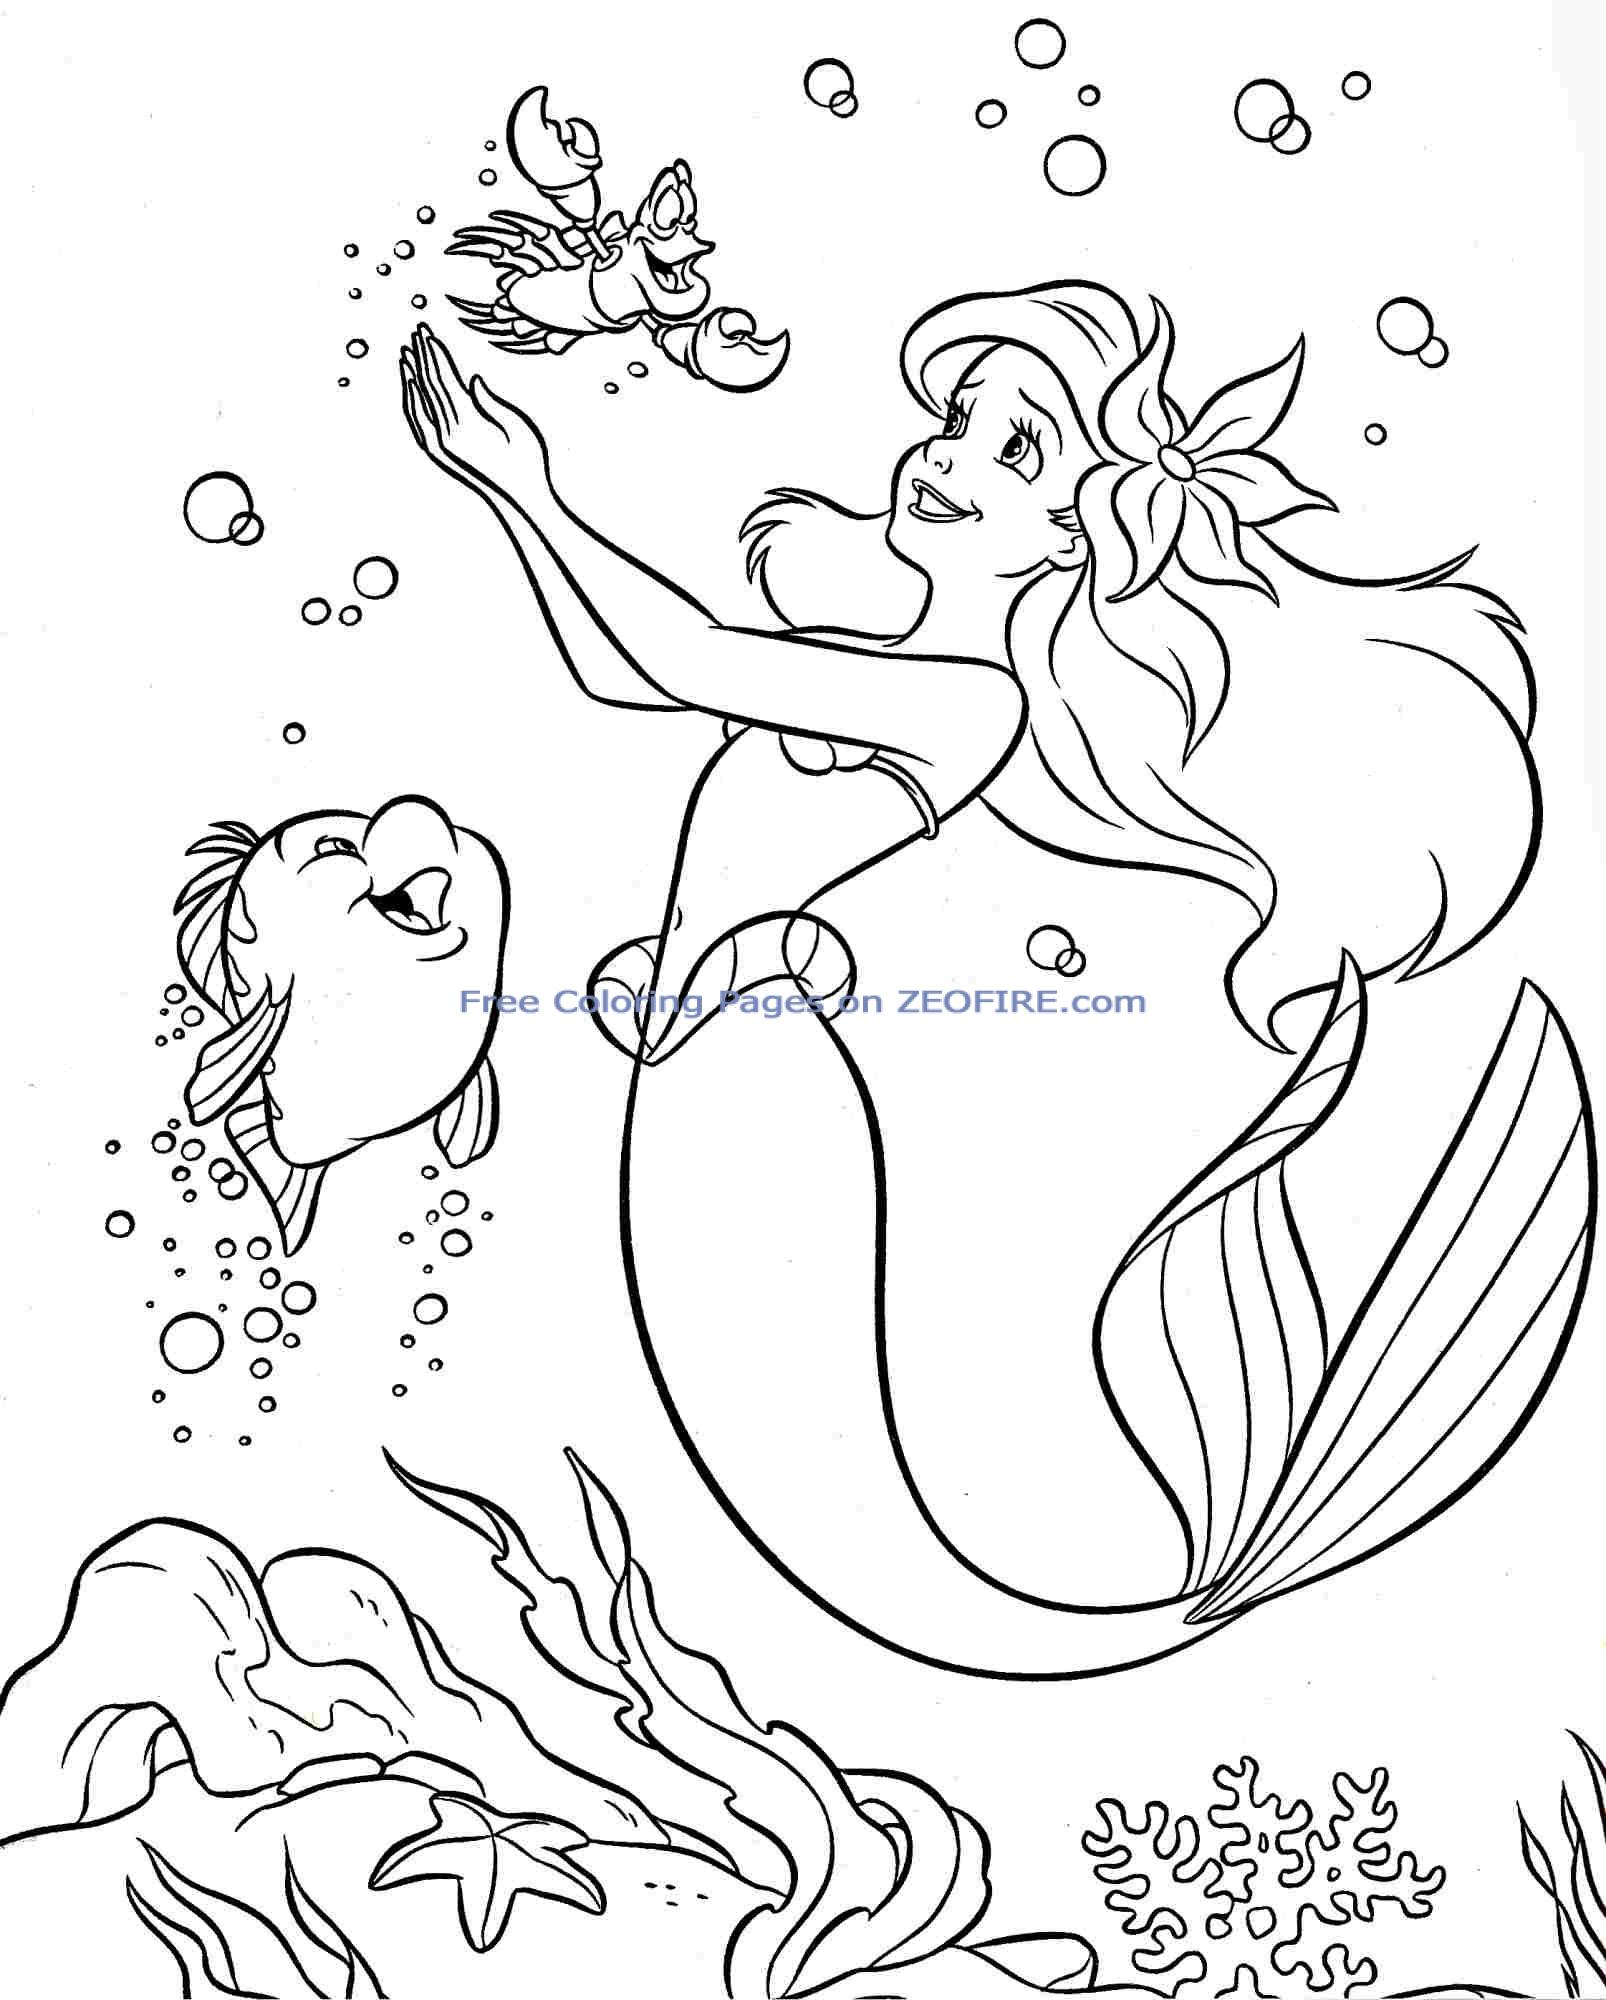 The little mermaid coloring pages to download and print ...